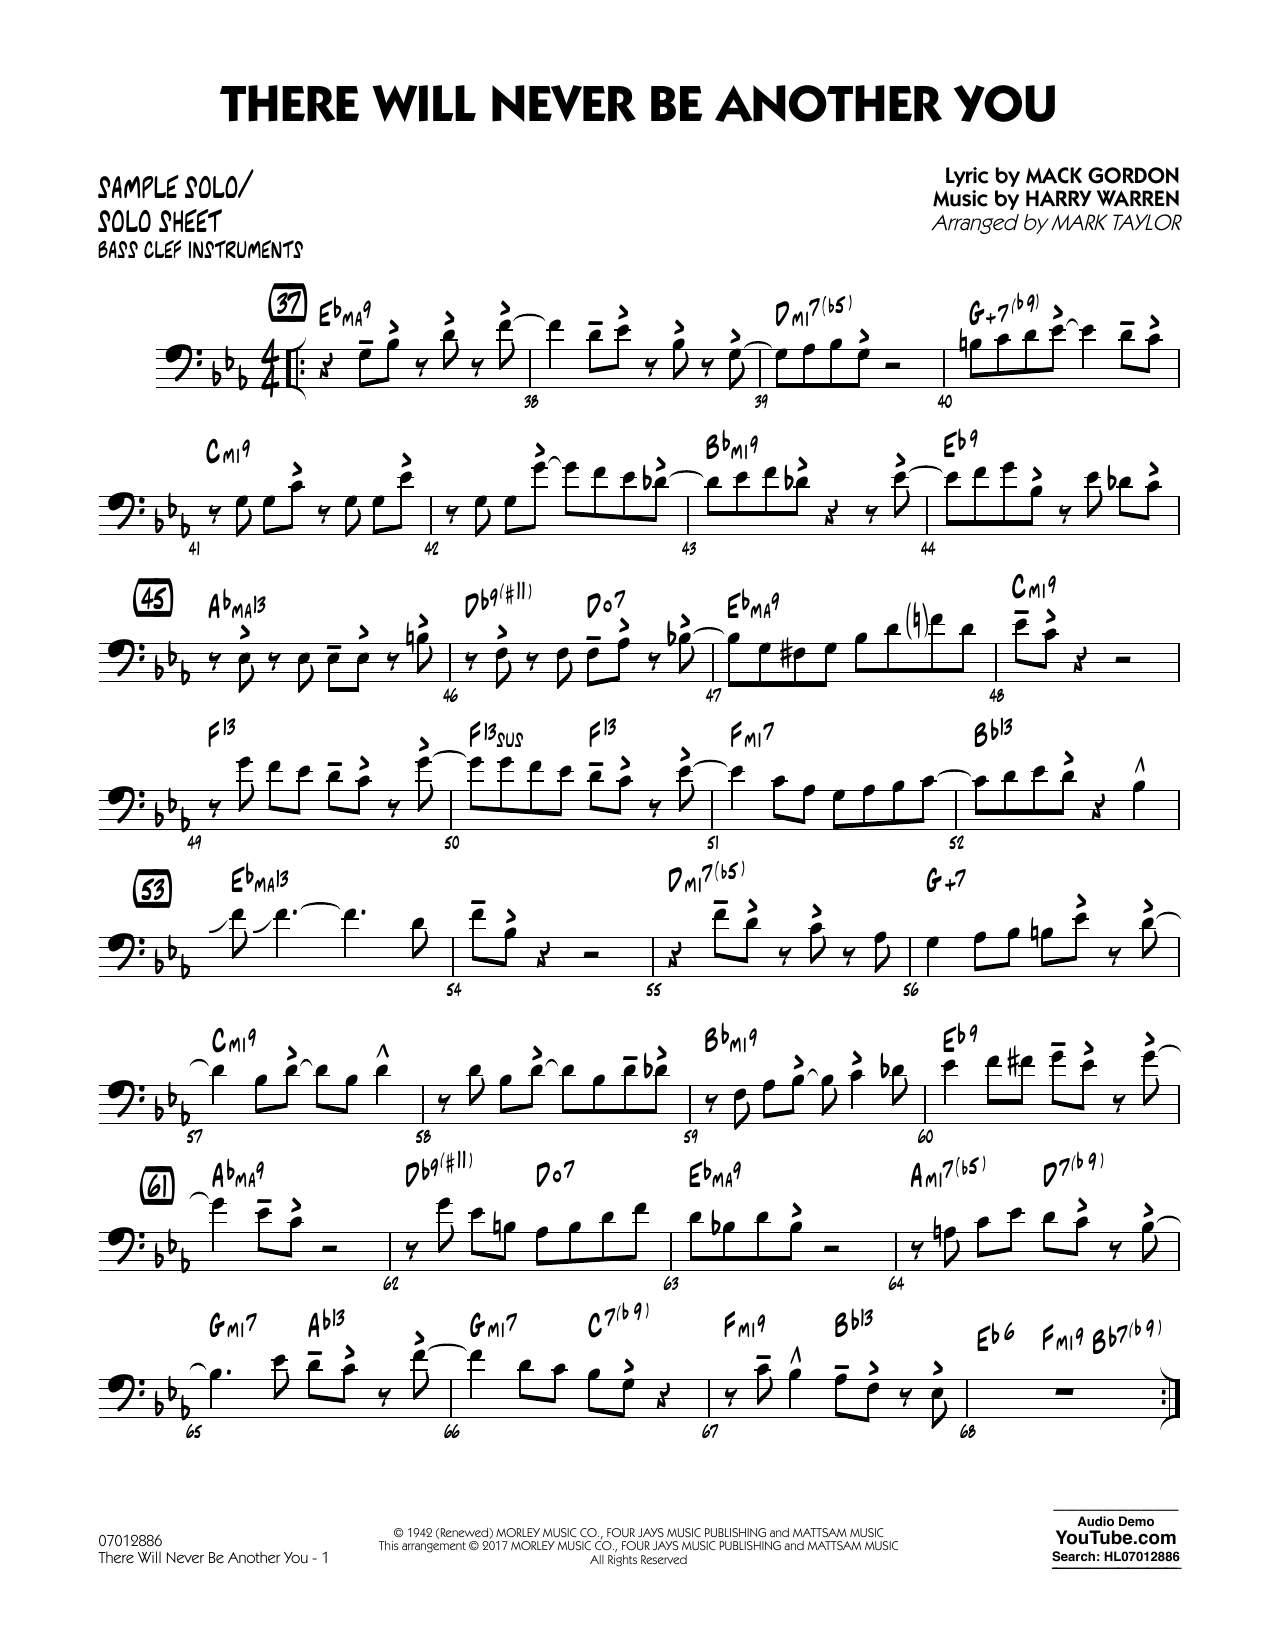 There Will Never Be Another You - Sample Solo/Solo Sheet Bass Cl Sheet Music